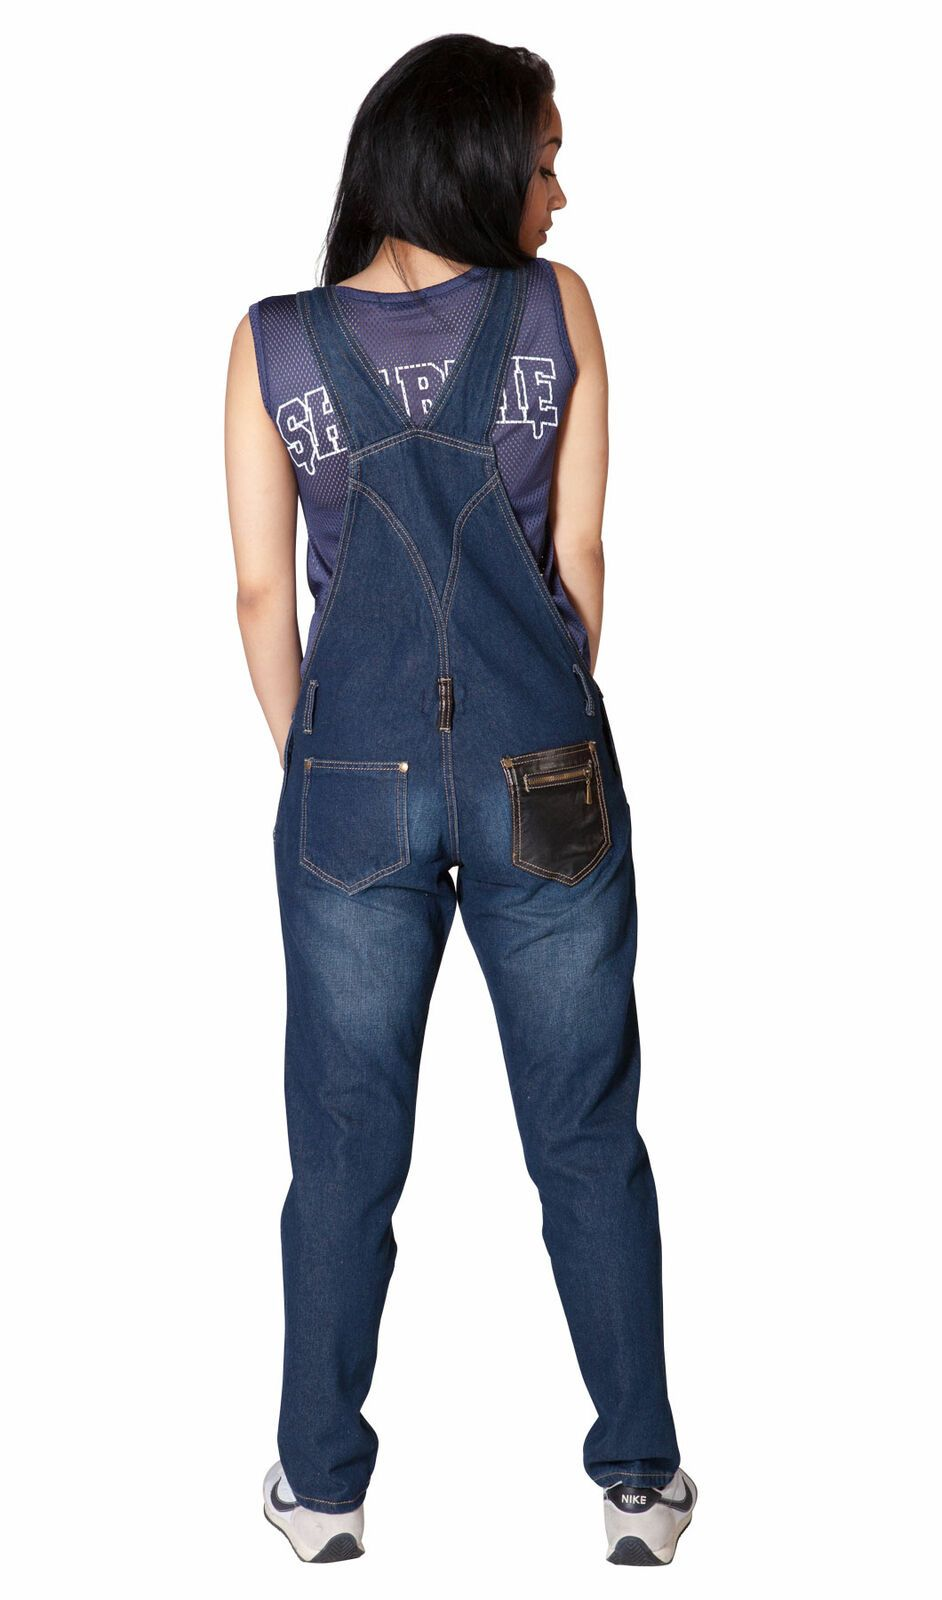 Back pose looking right with focus on back straps and pockets of indigo dungarees.